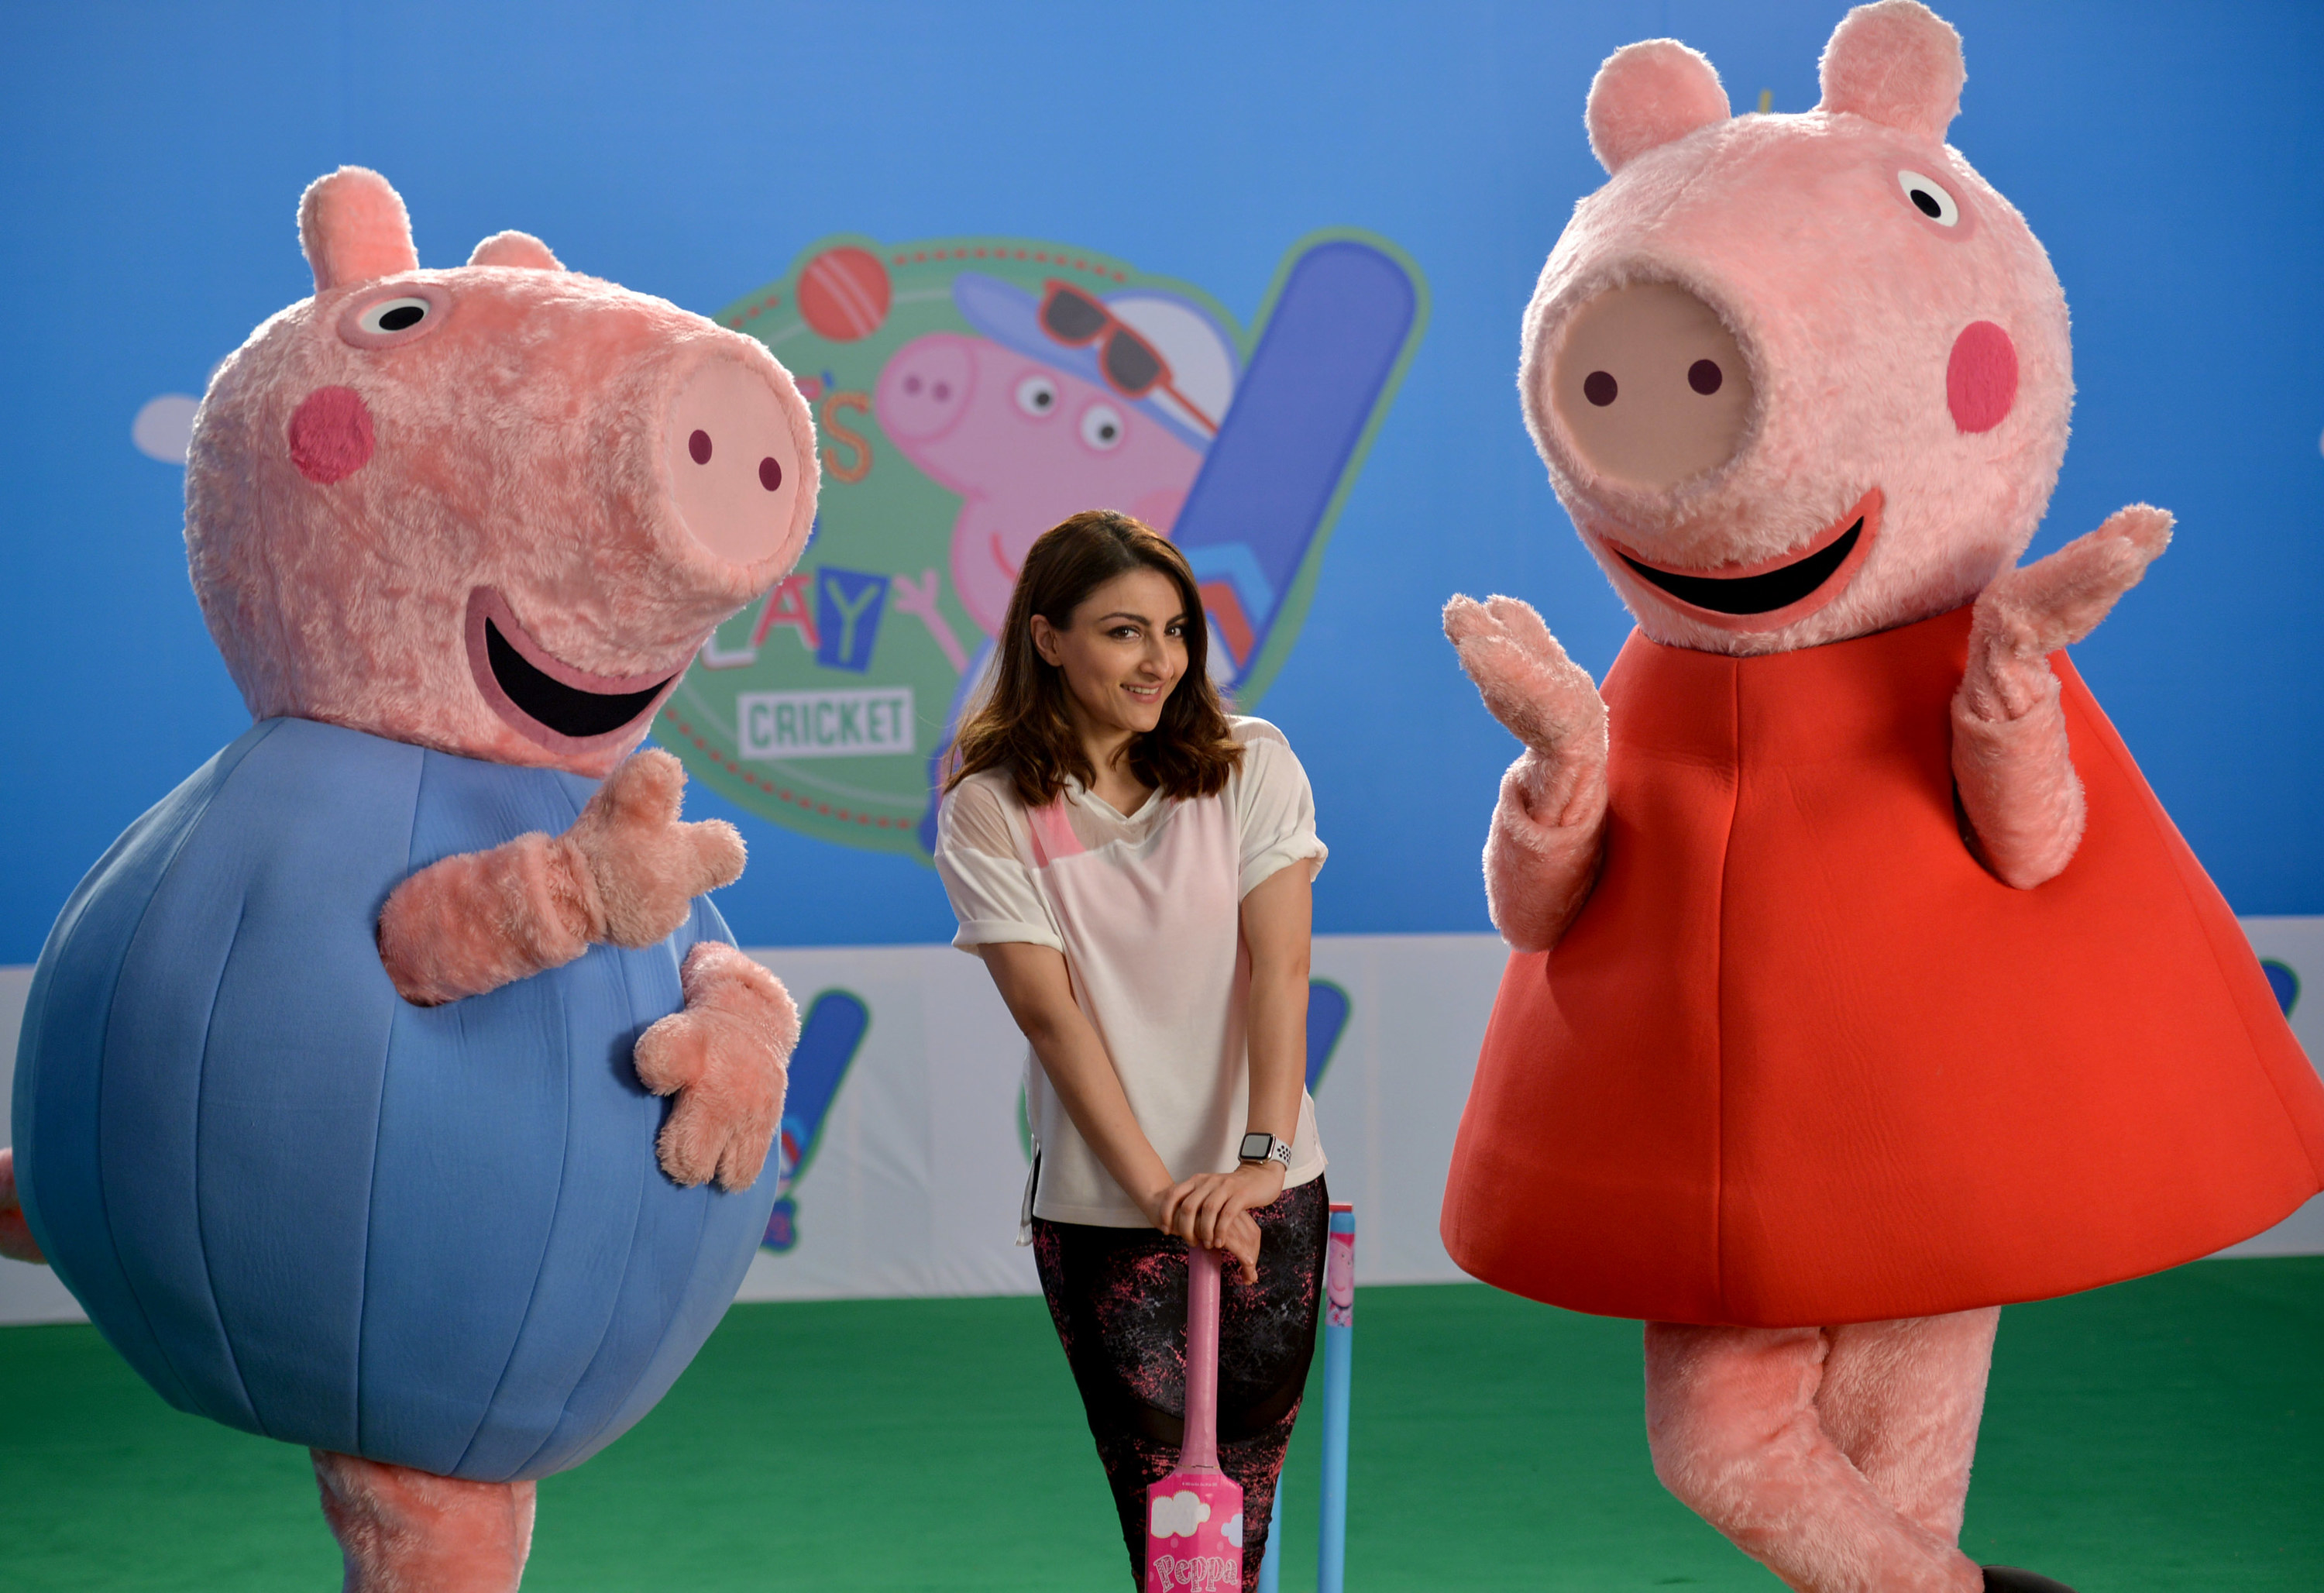 Photo of a Peppa at a cricket event